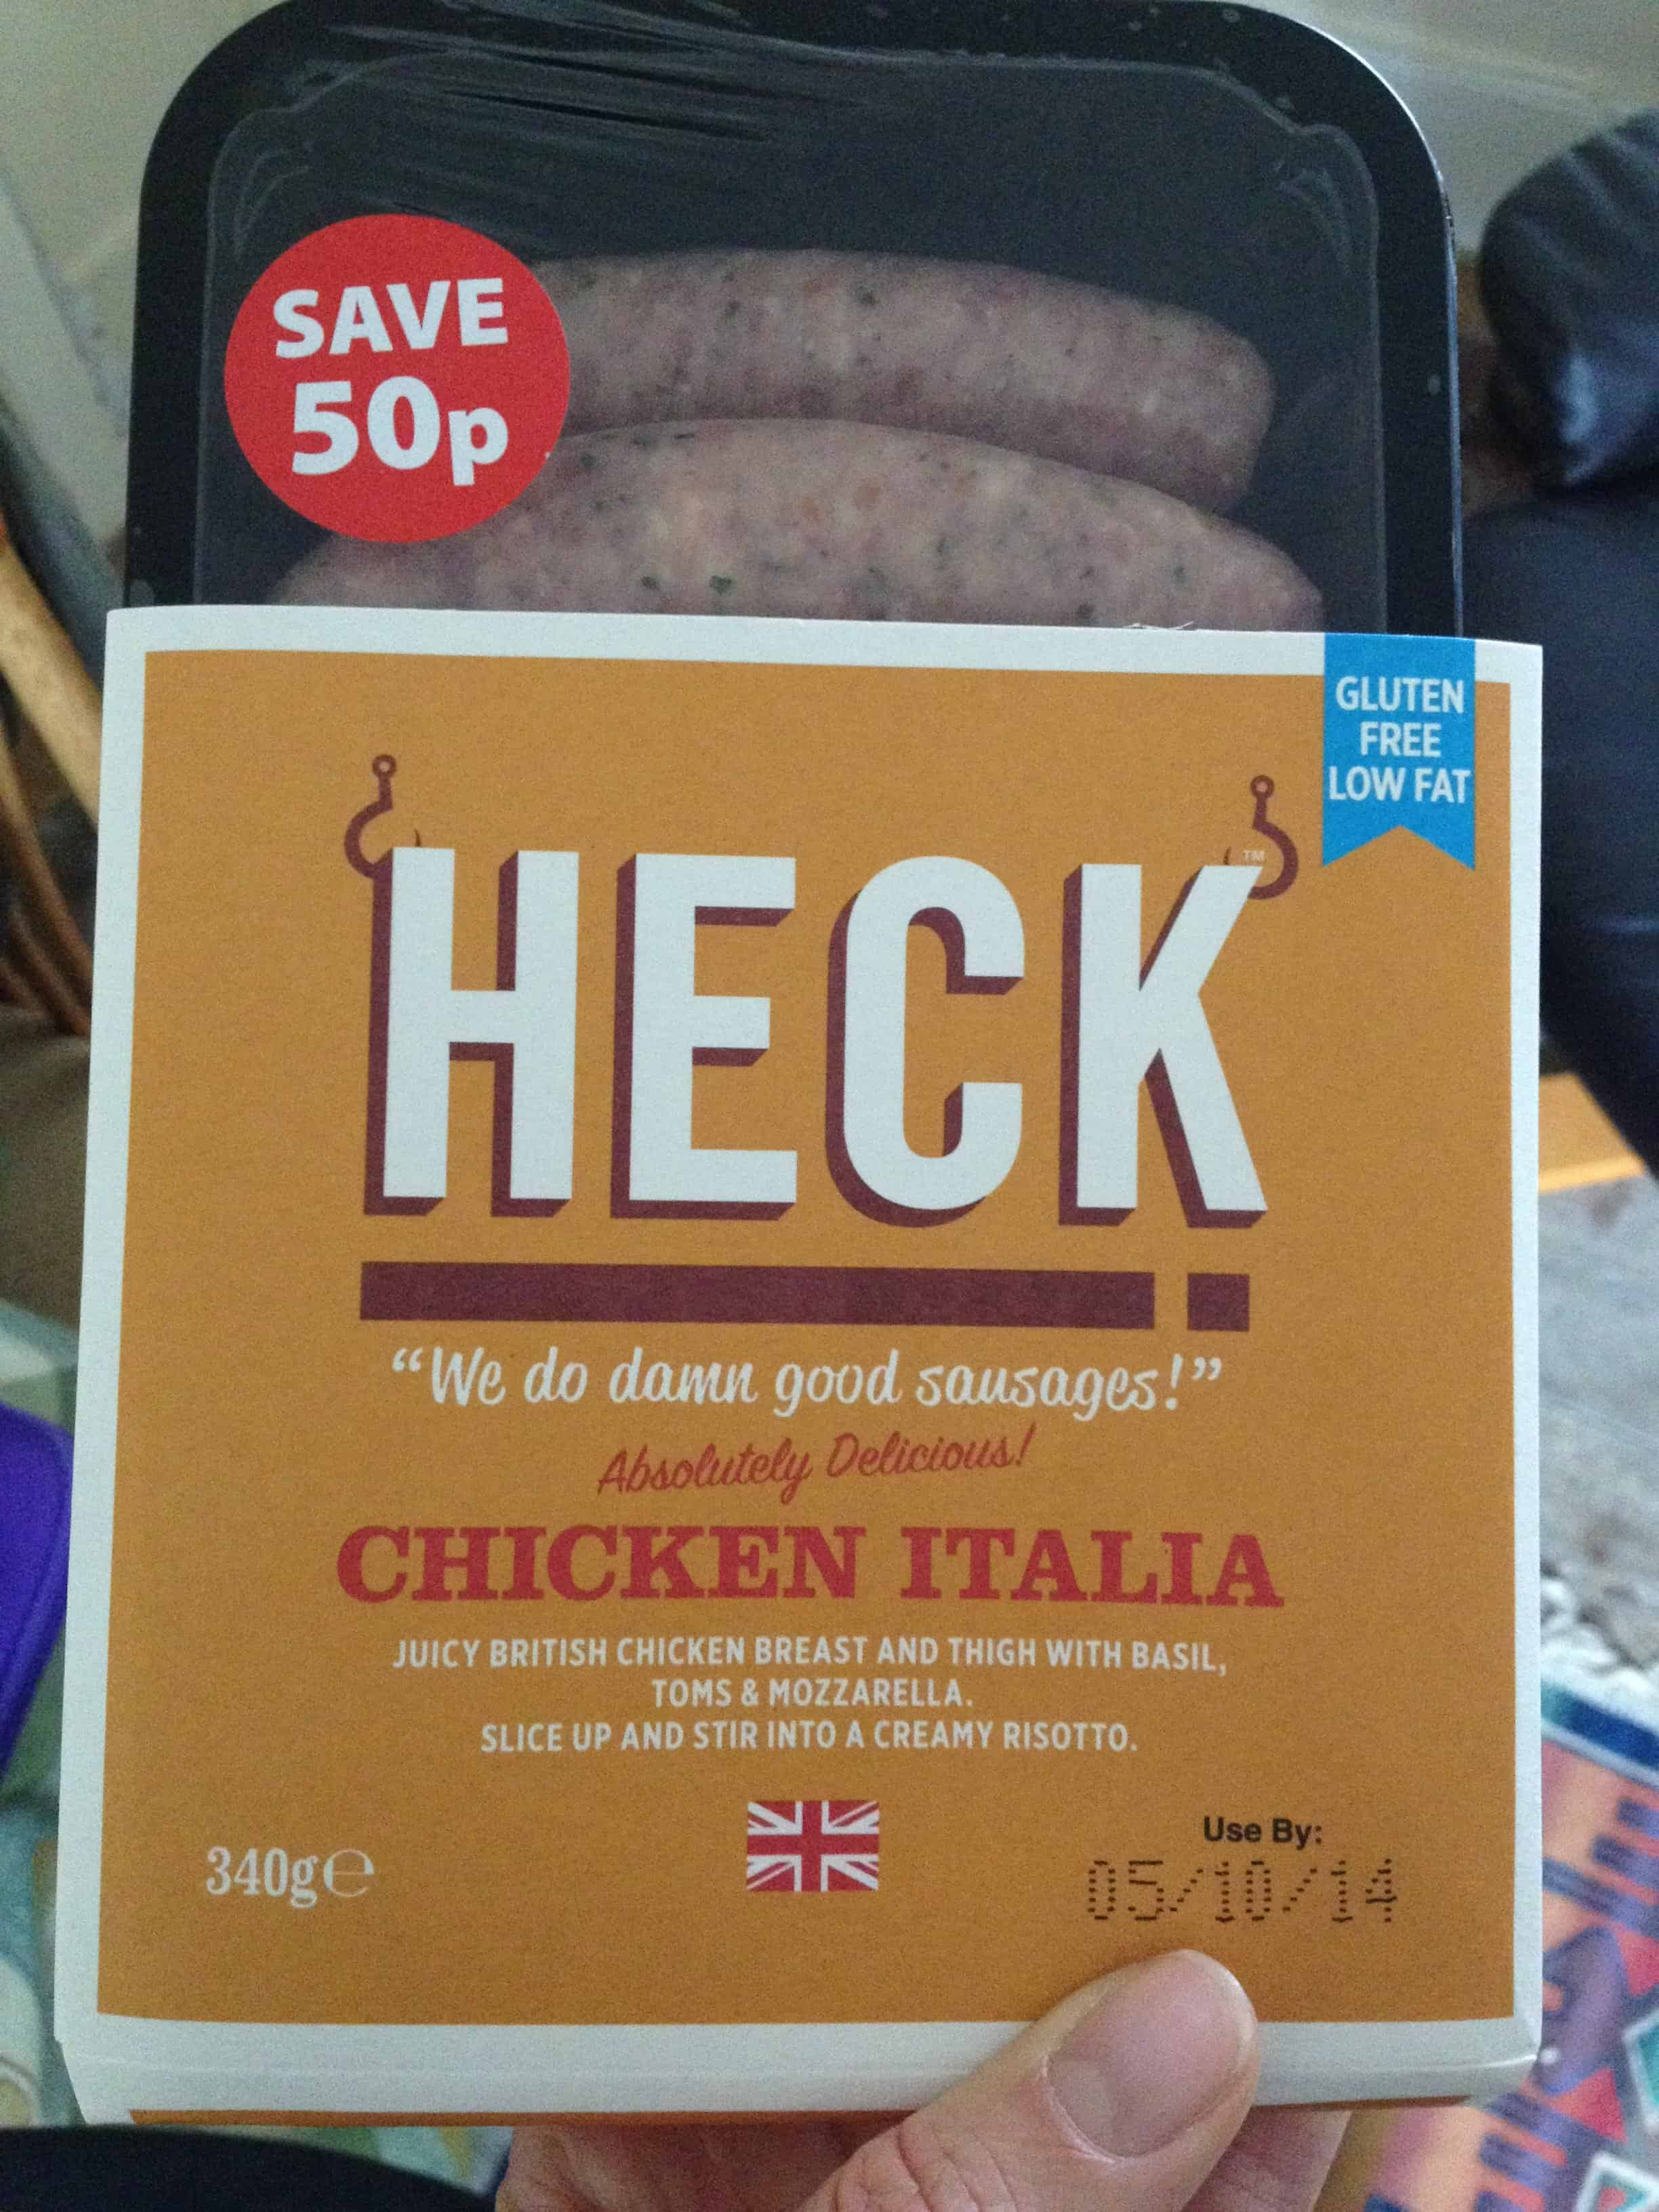 Chicken sausages from Heck.